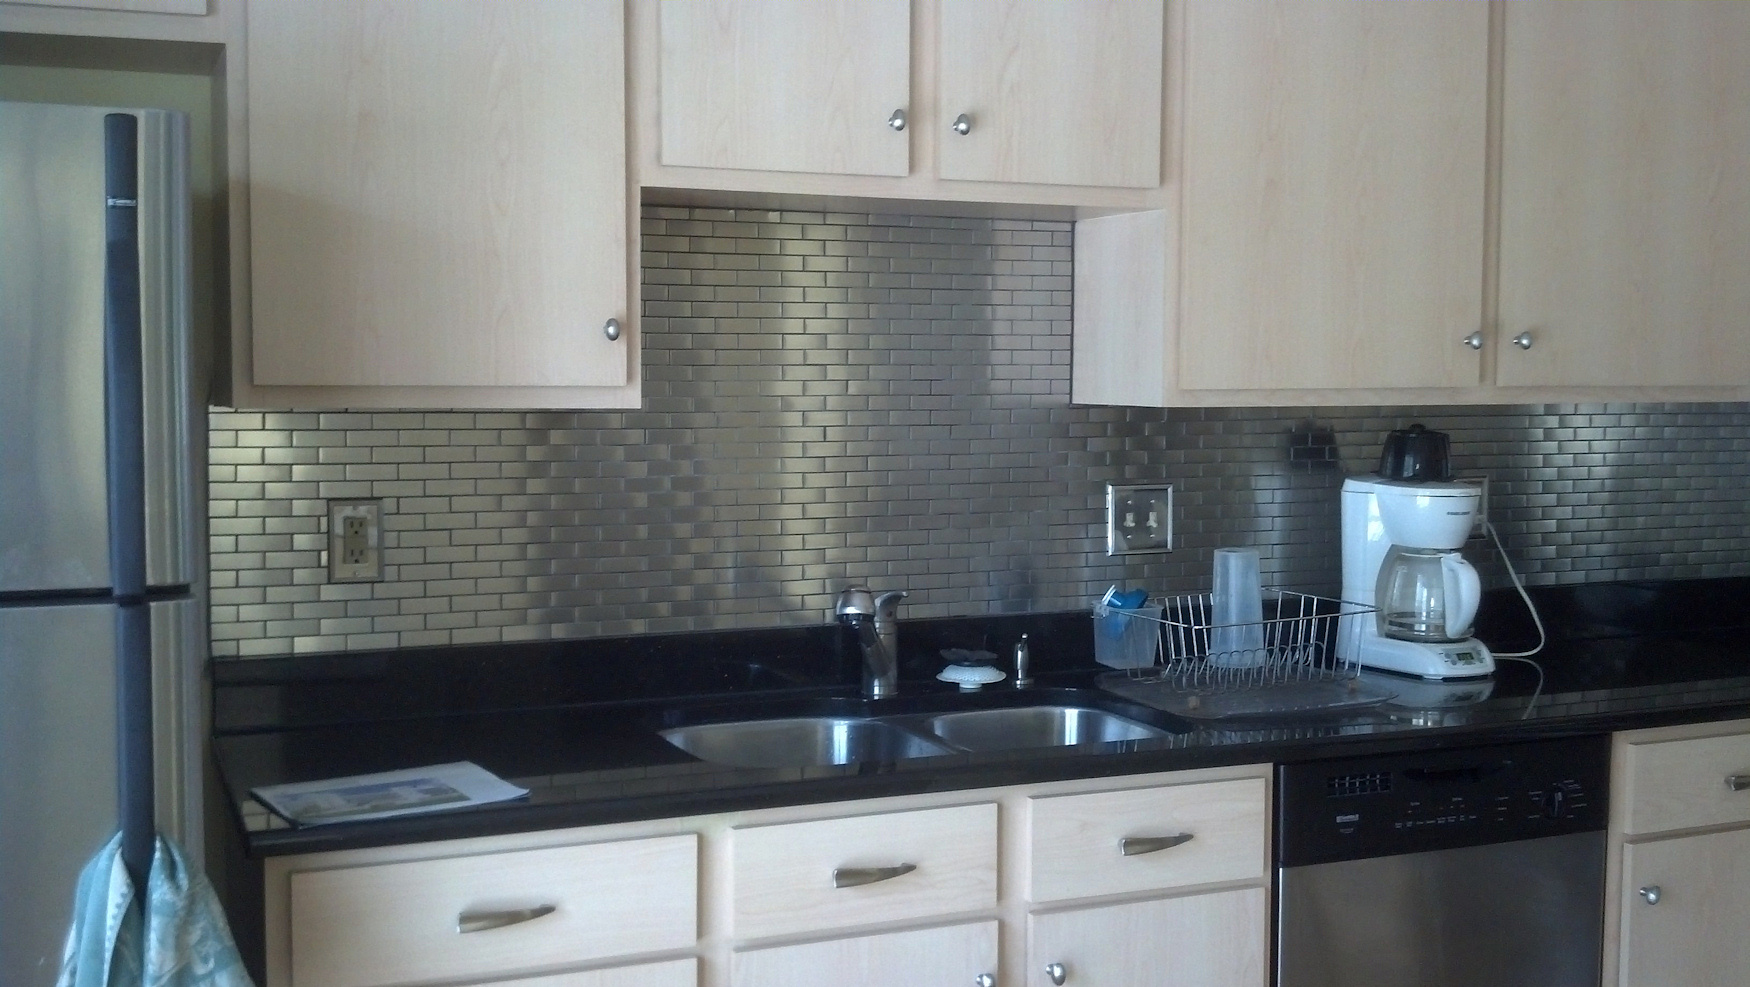 Ceramic Tile Kitchen Backsplash Designs